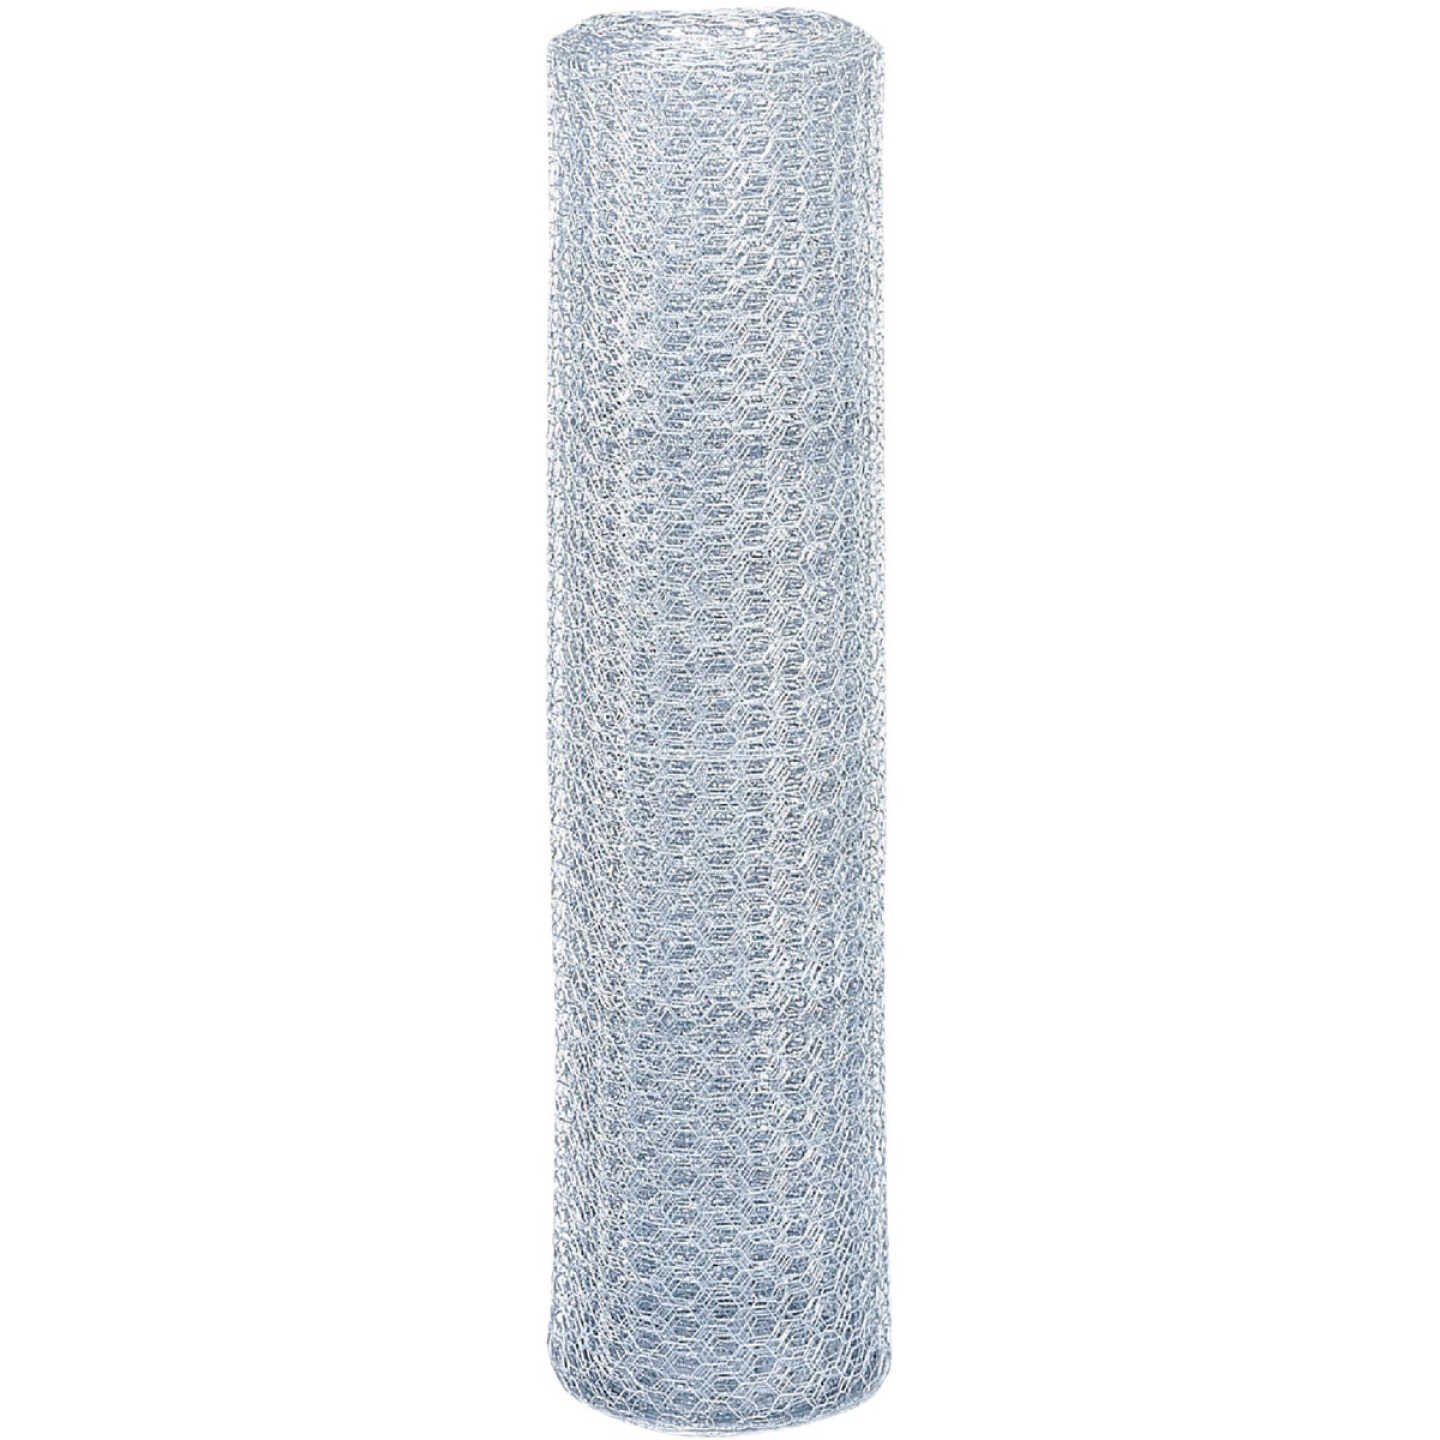 Do it 1 In. x 36 In. H. x 25 Ft. L. Hexagonal Wire Poultry Netting Image 2